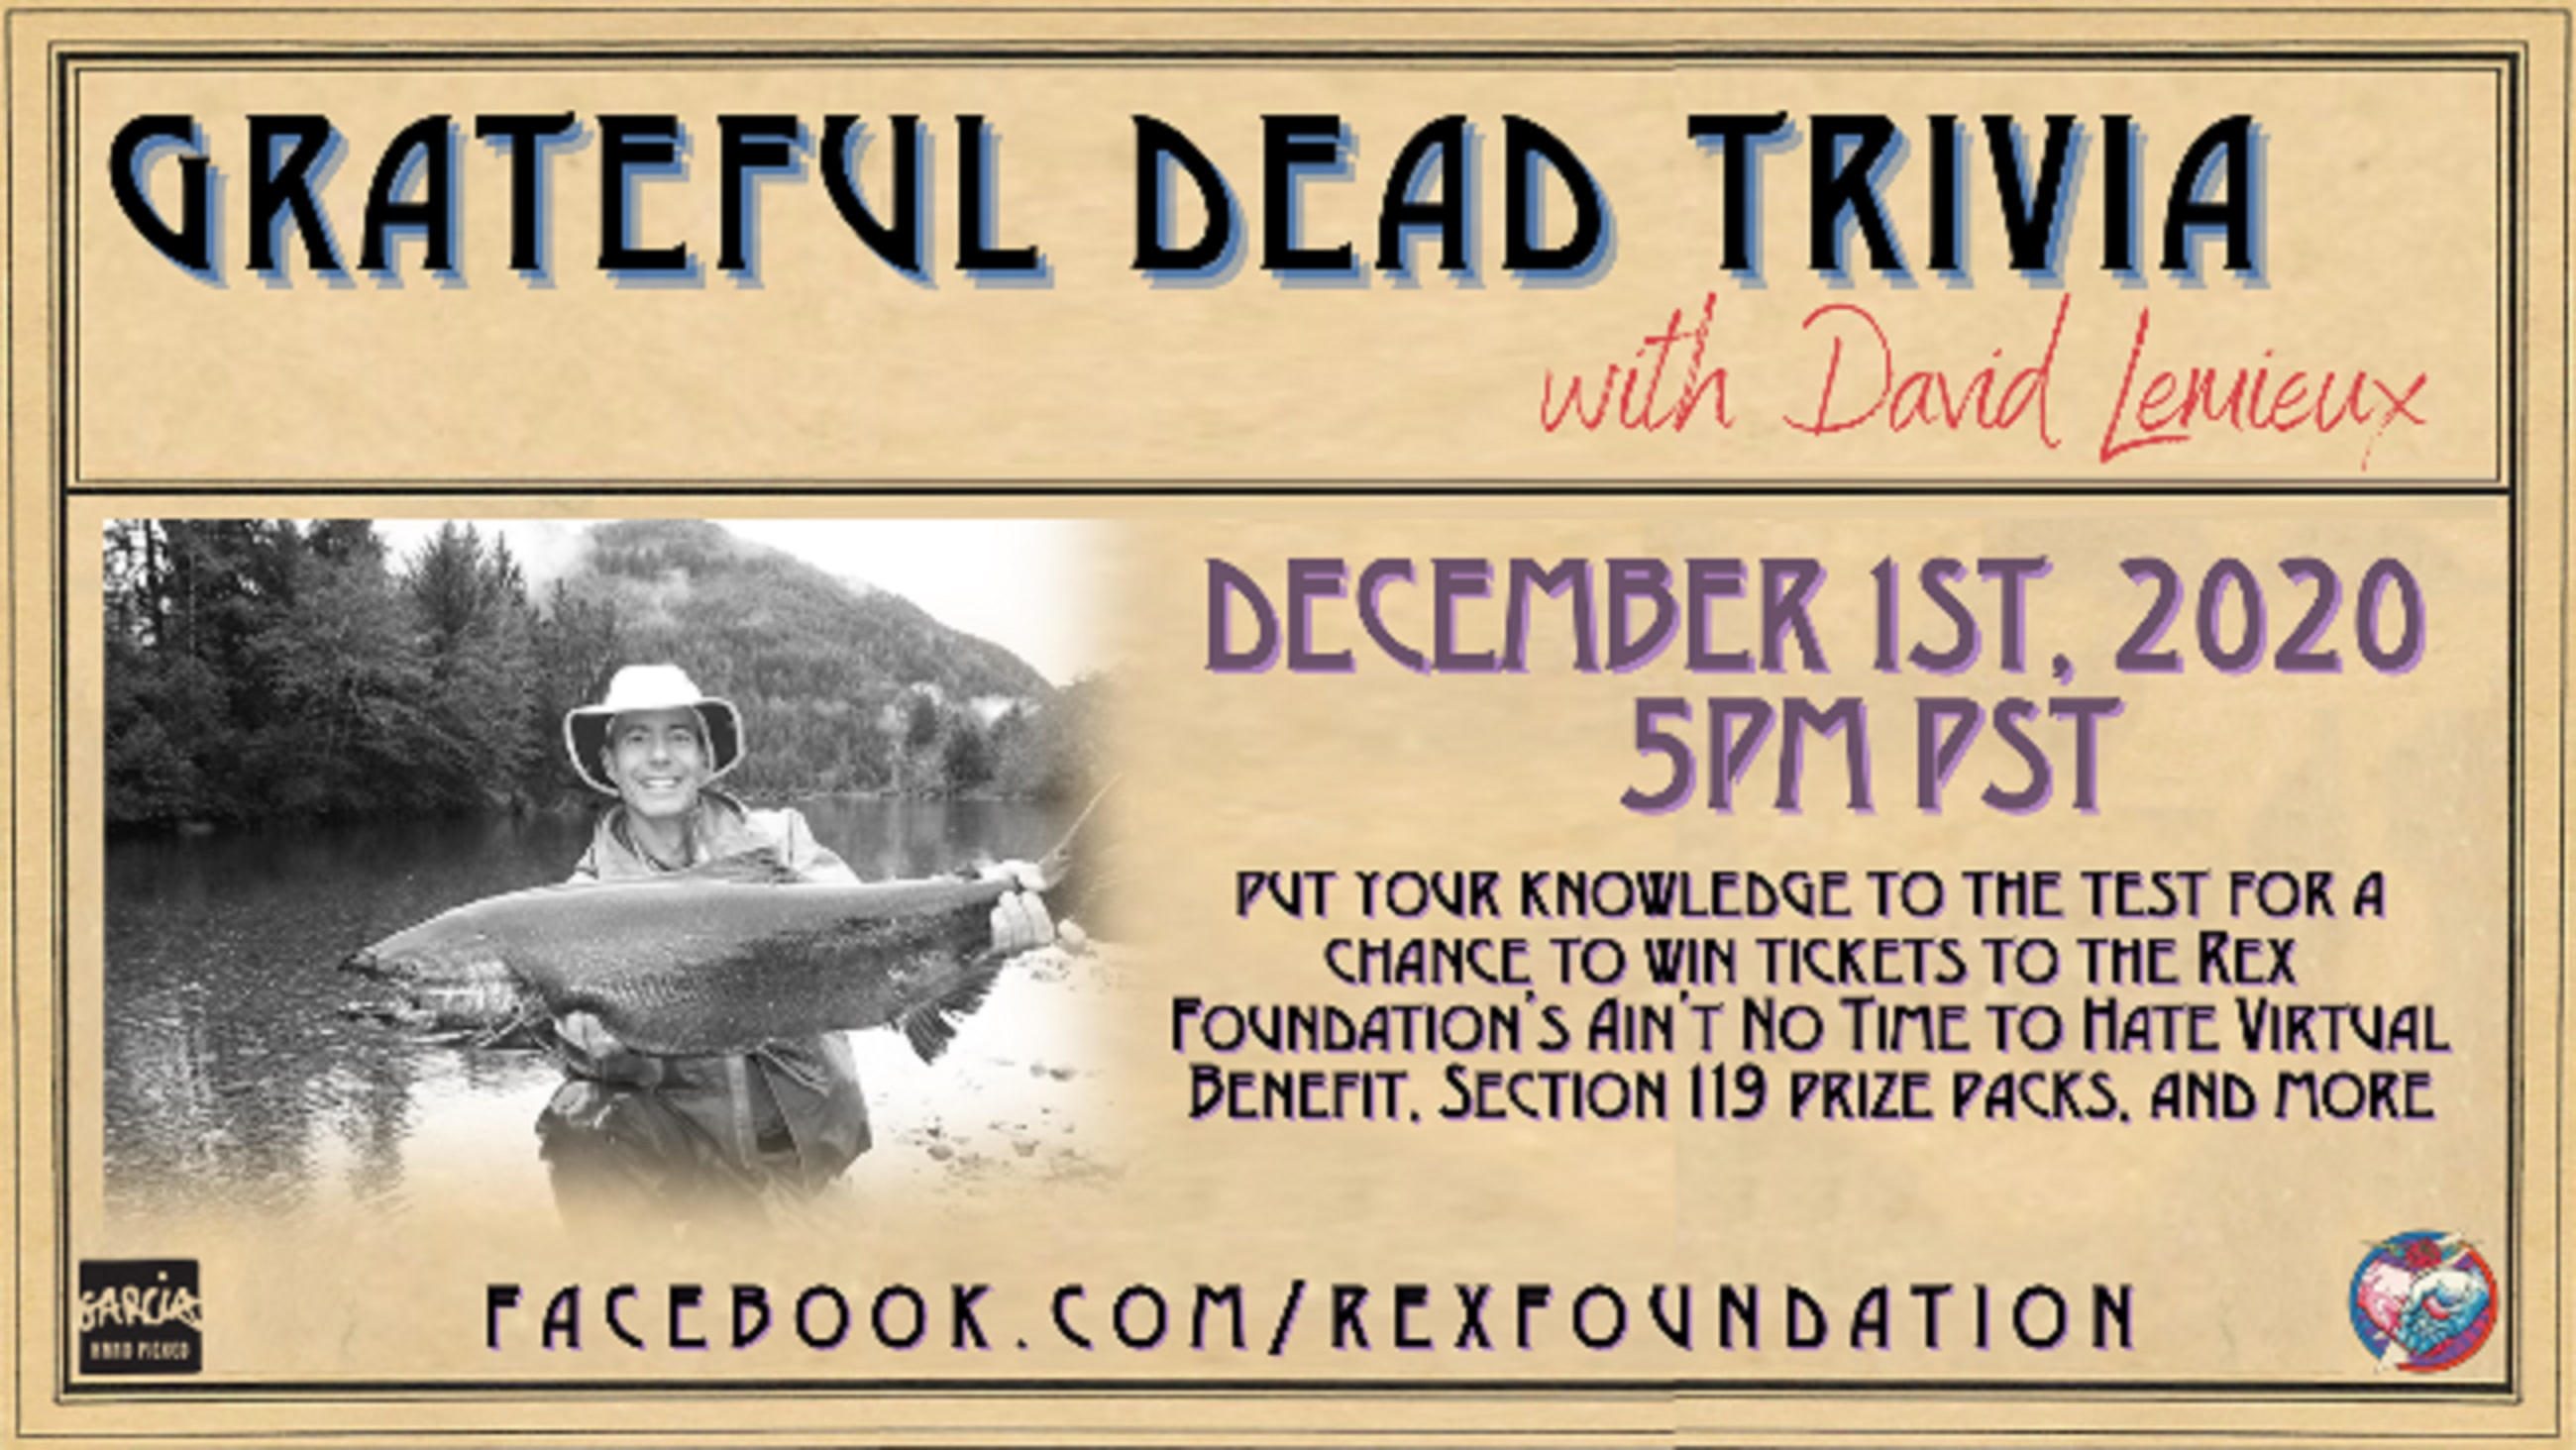 Join Rex Foundation for Grateful Dead Trivia with David Lemieux December 1